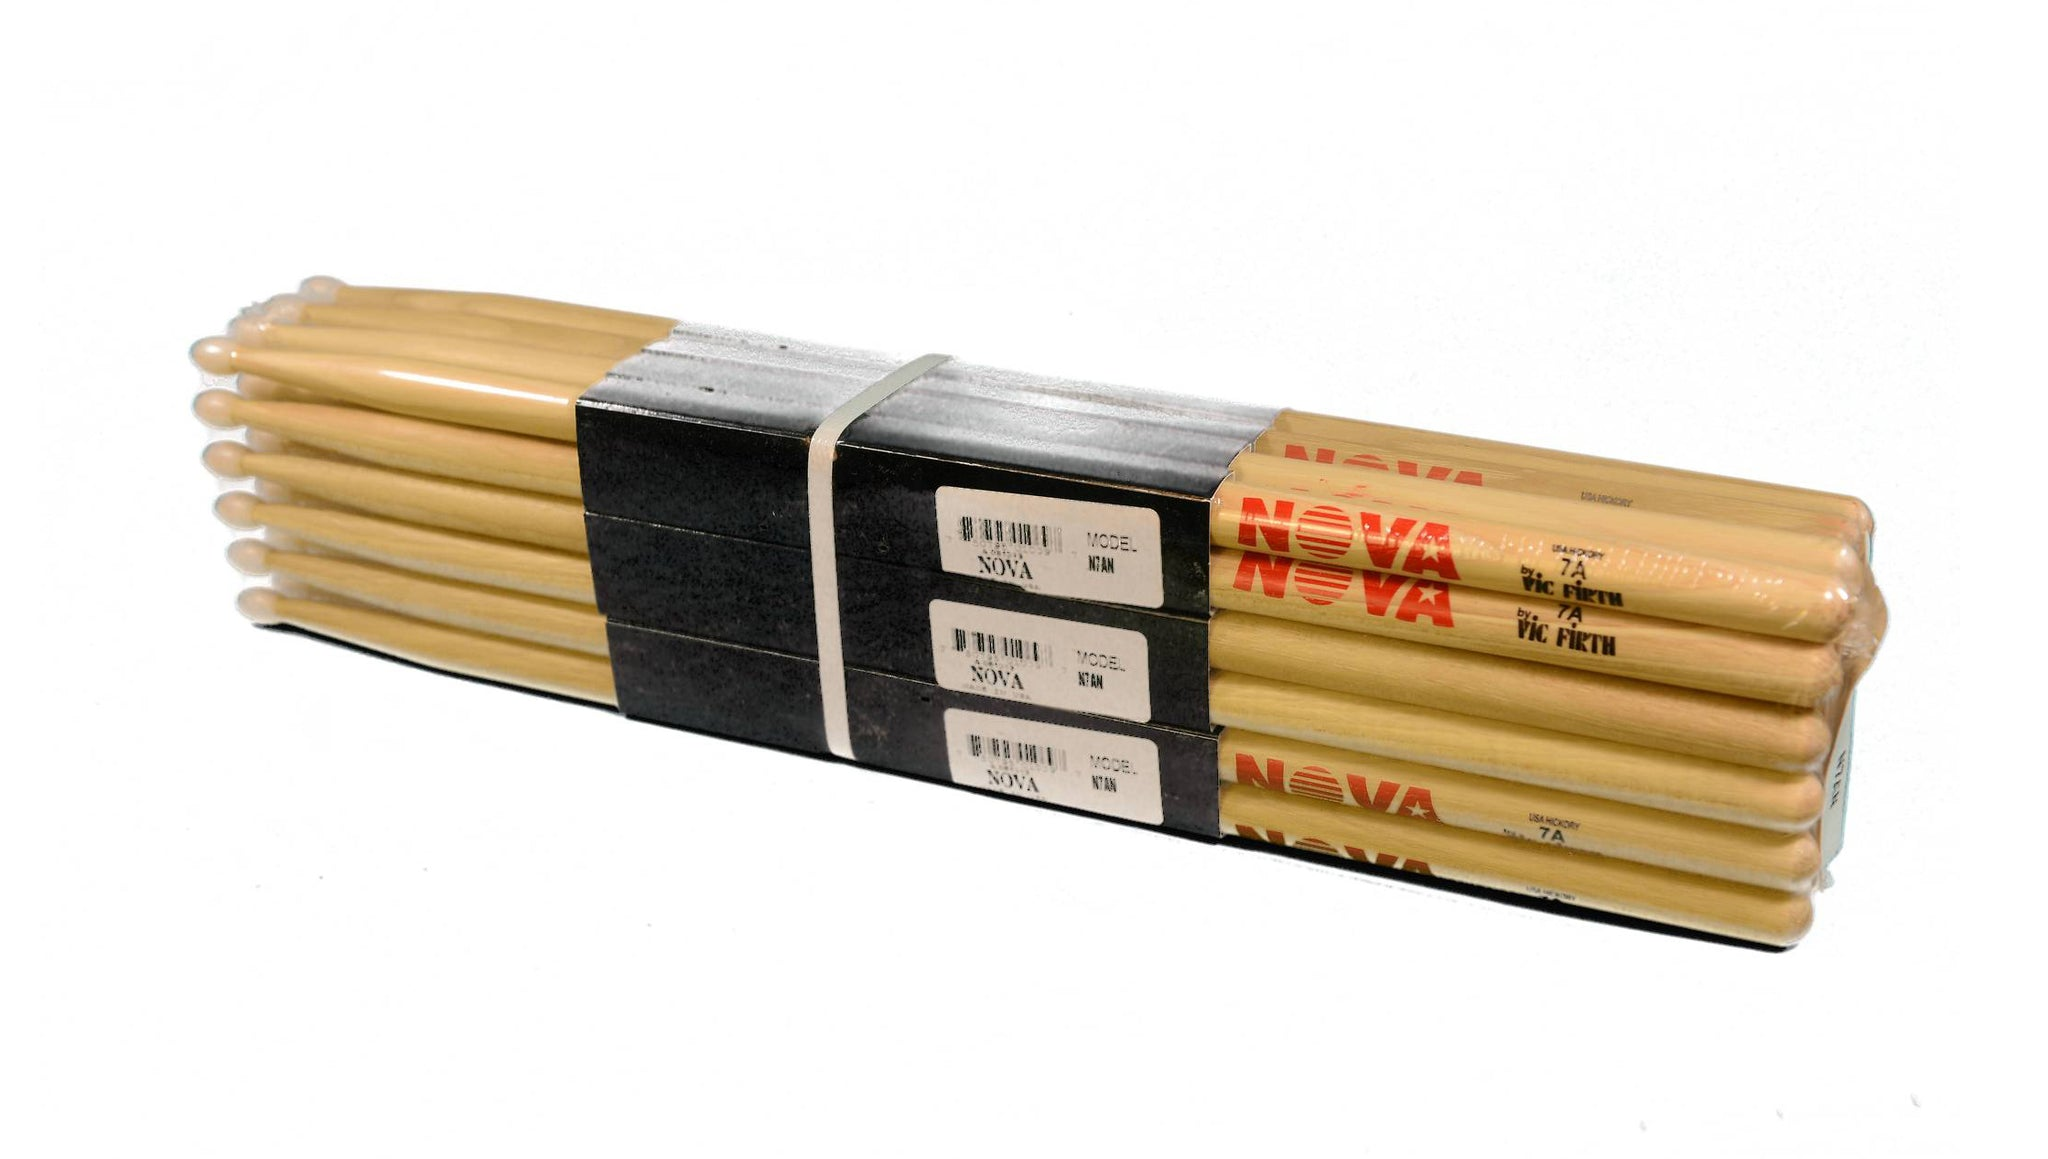 (12-Pairs) Vic Firth® NOVA® 7A Hickory Drumsticks, Wood Sticks, Nylon Tip. #N7AN